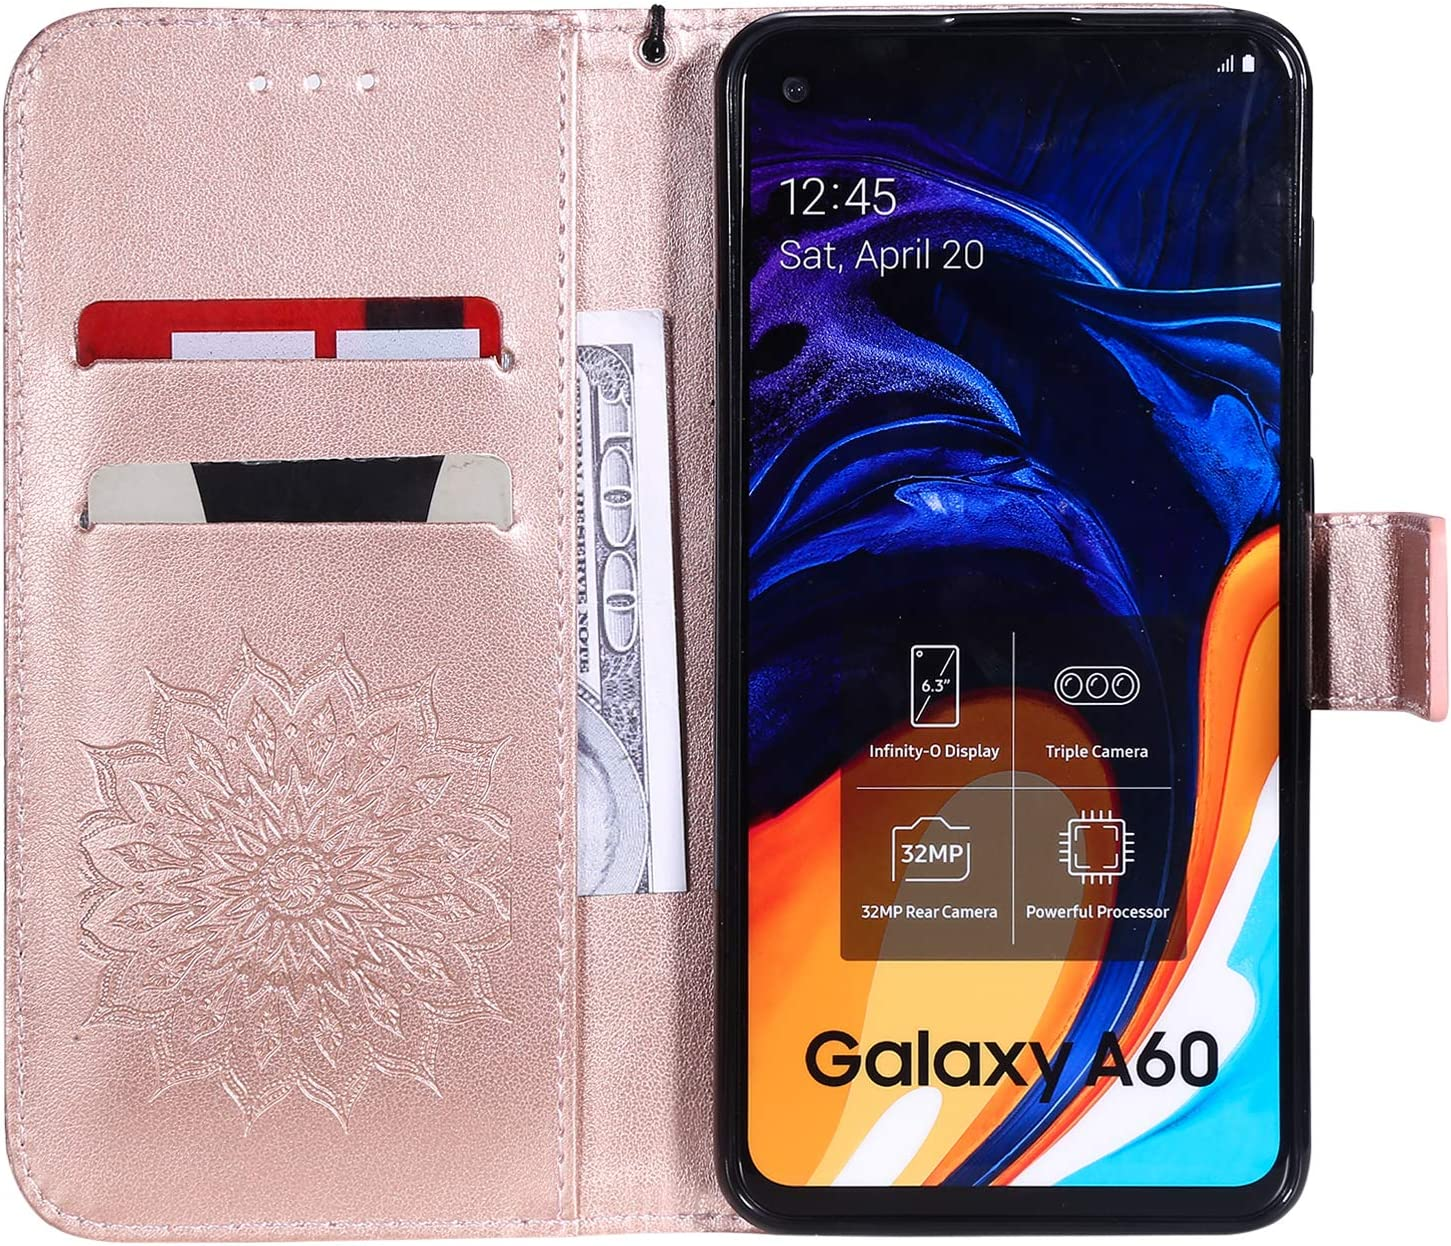 NEXCURIO Galaxy A60 Wallet Case with Card Holder Folding Kickstand Leather Case Shockproof Flip Cover for Samsung Galaxy A60 NEKTU020248 Rose Gold